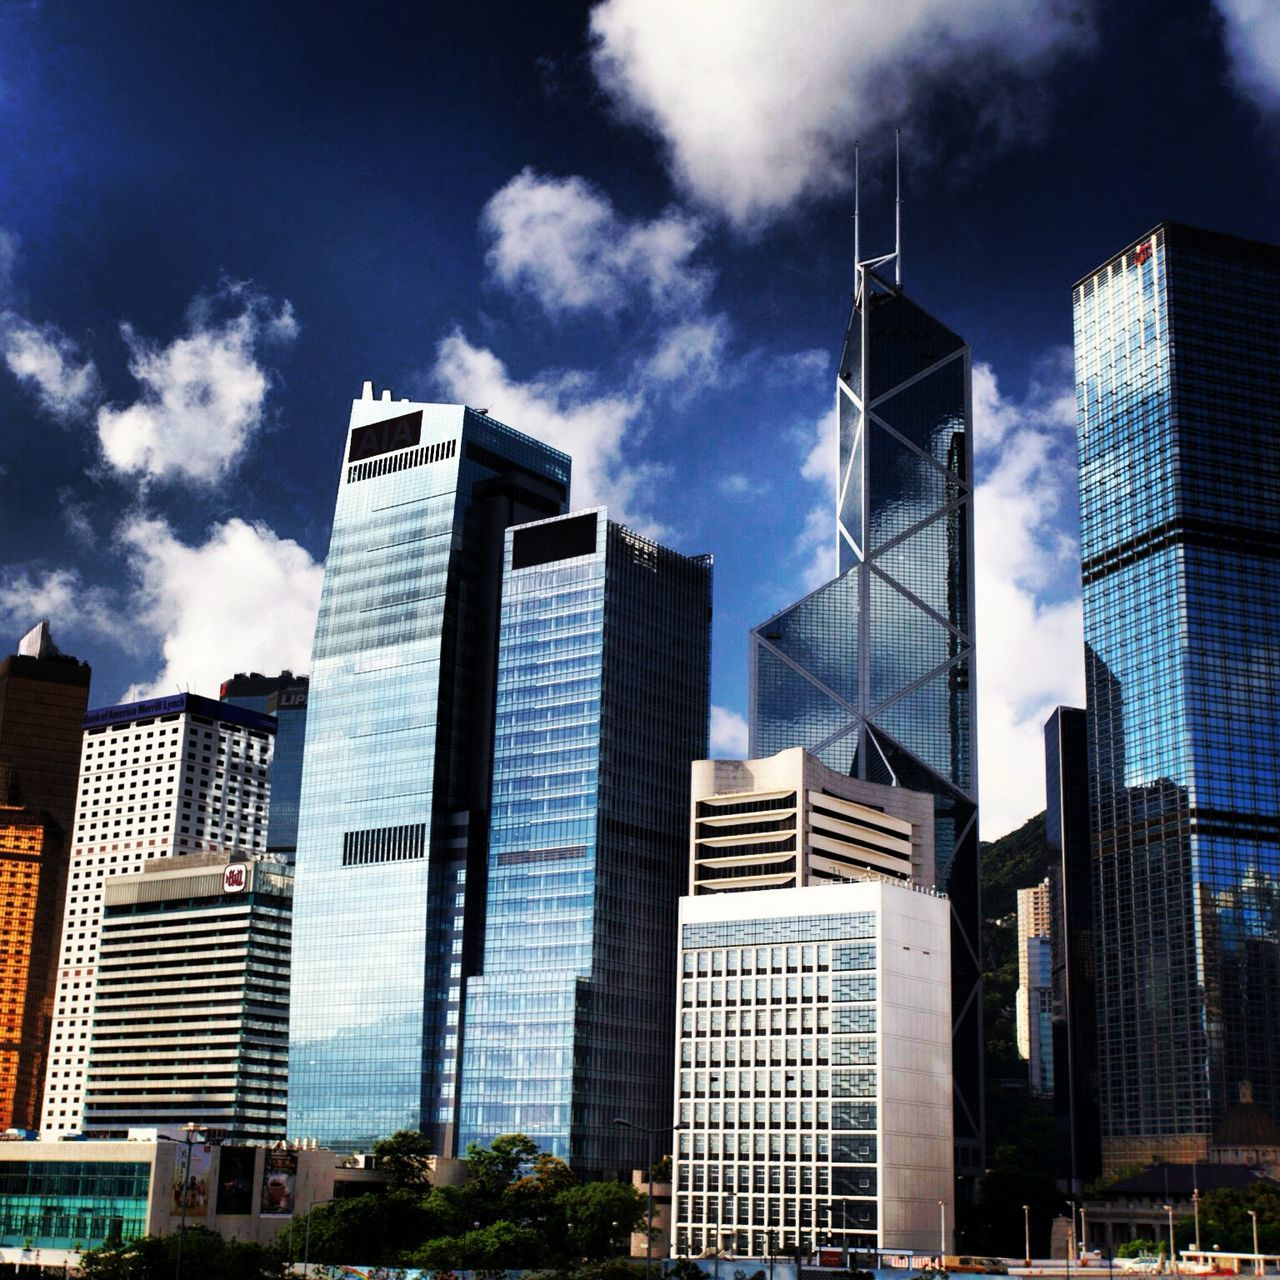 skyscraper, architecture, building exterior, modern, sky, city, built structure, cloud - sky, day, outdoors, low angle view, no people, tall, growth, urban skyline, cityscape, office park